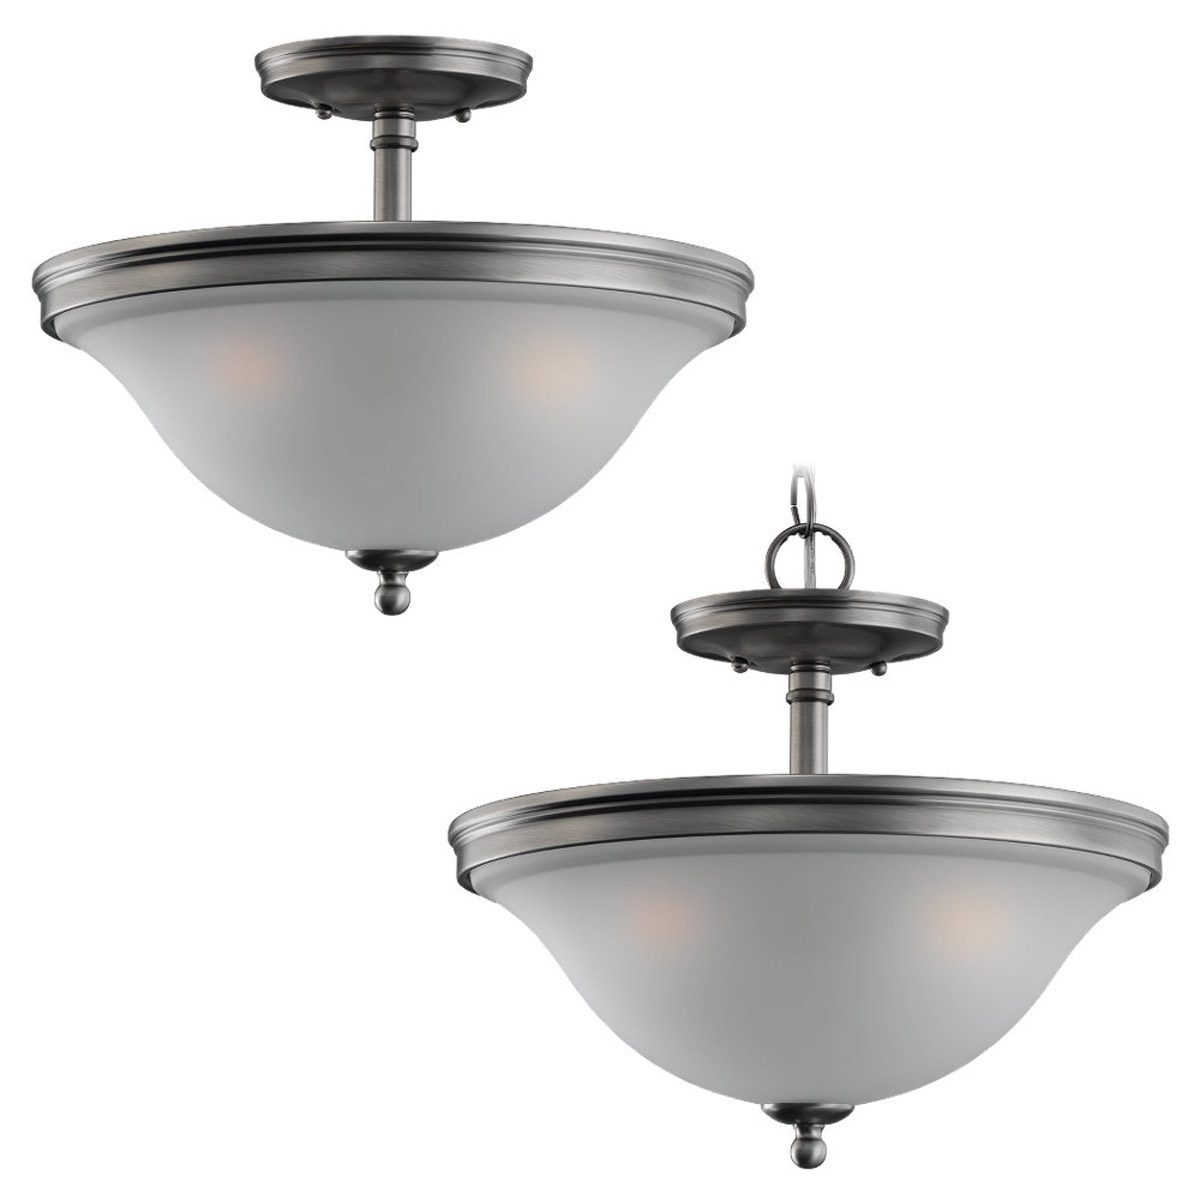 Sea Gull Lighting Gladstone 3 Light Flush Mount in Antique Brushed Nickel 77850-965